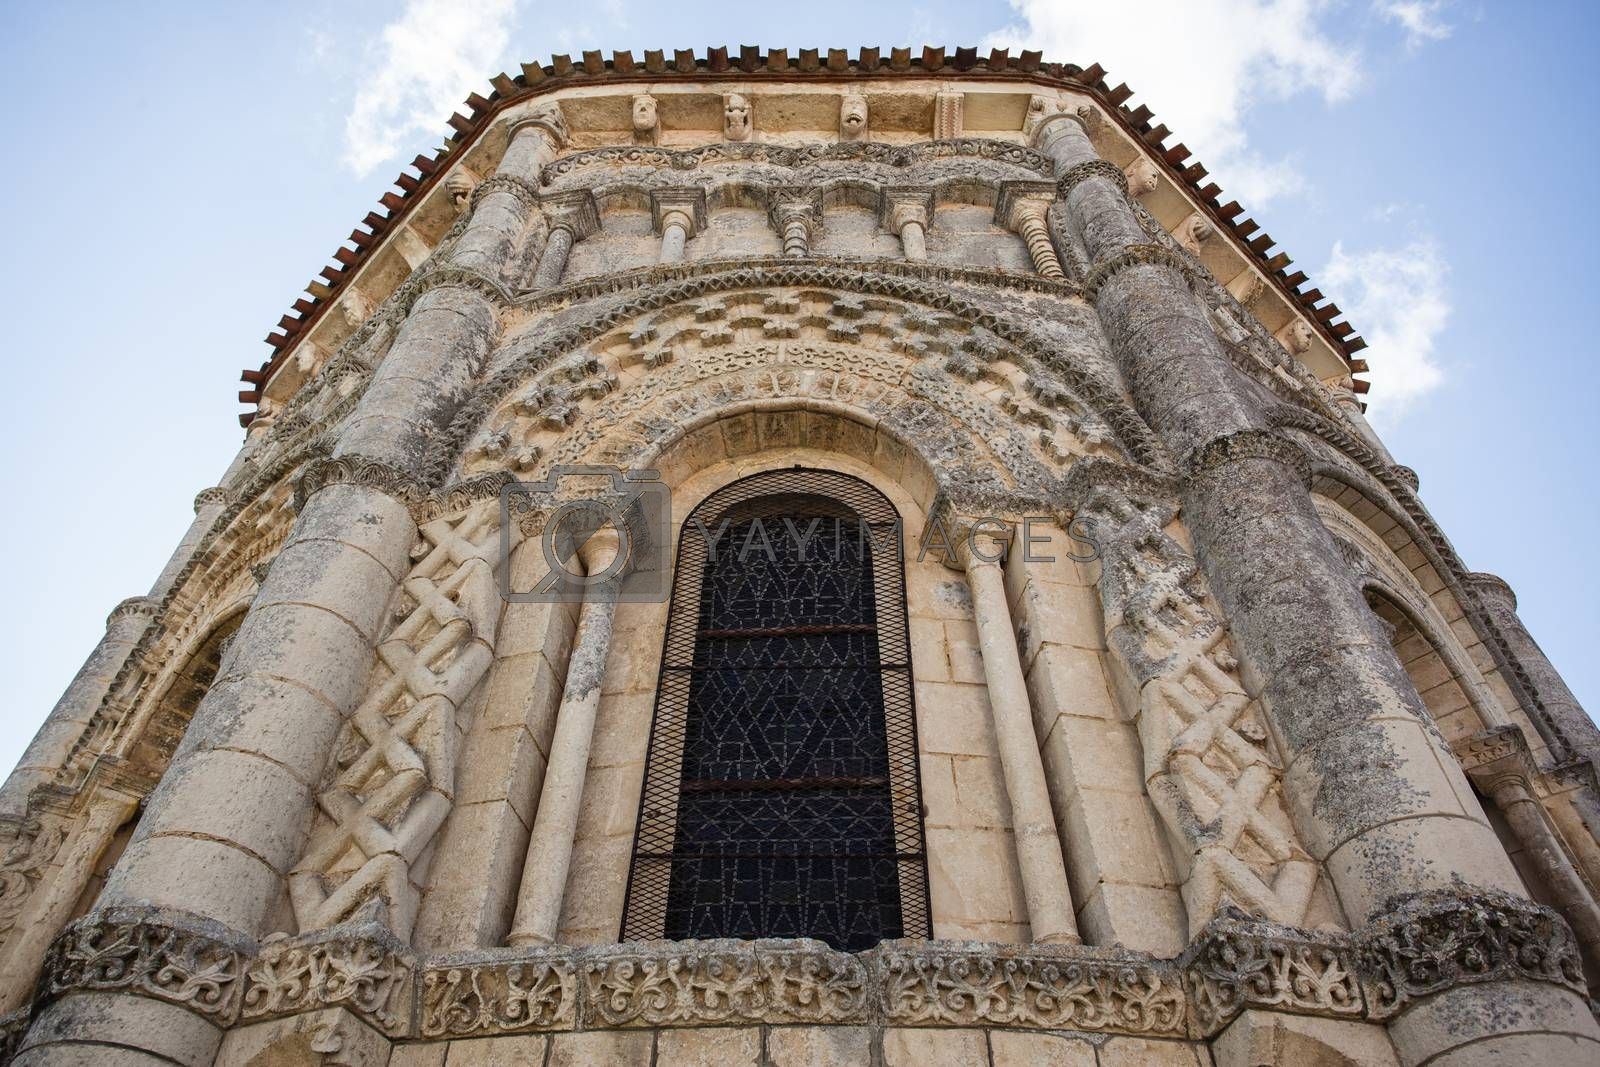 Abse window of the romanesque Rioux church. Region of Charente in France